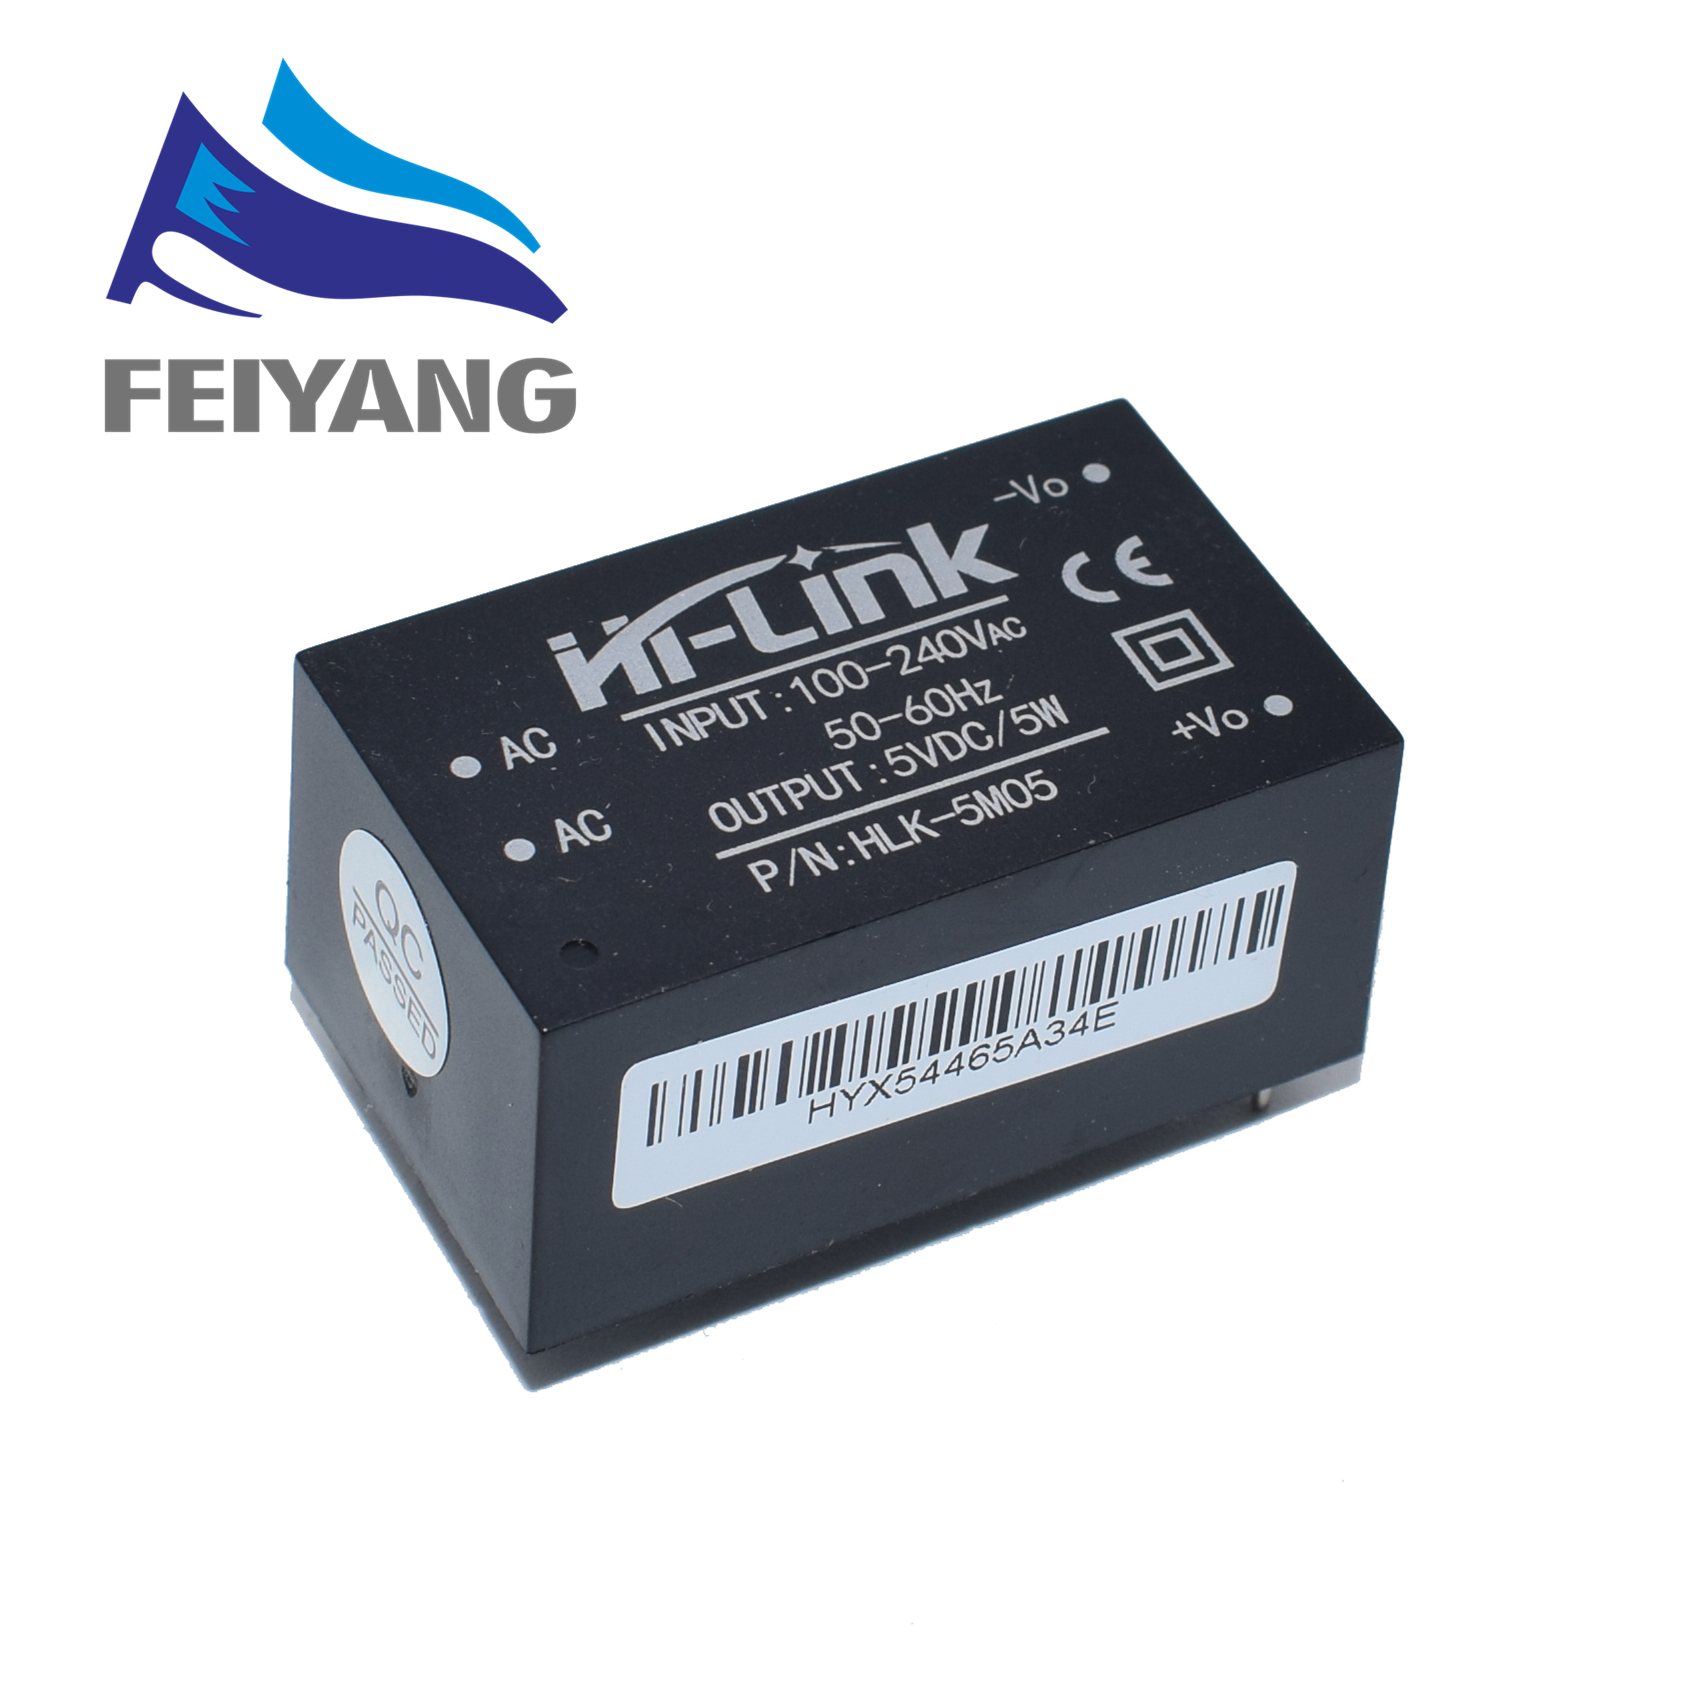 Image 2 - 5pcs HLK 5M05 HLK 5M03 HLK 5M12 5W AC DC 220V to 12V/5V/3.3V Buck Step Down Power Supply Module Converter Intelligent-in Integrated Circuits from Electronic Components & Supplies